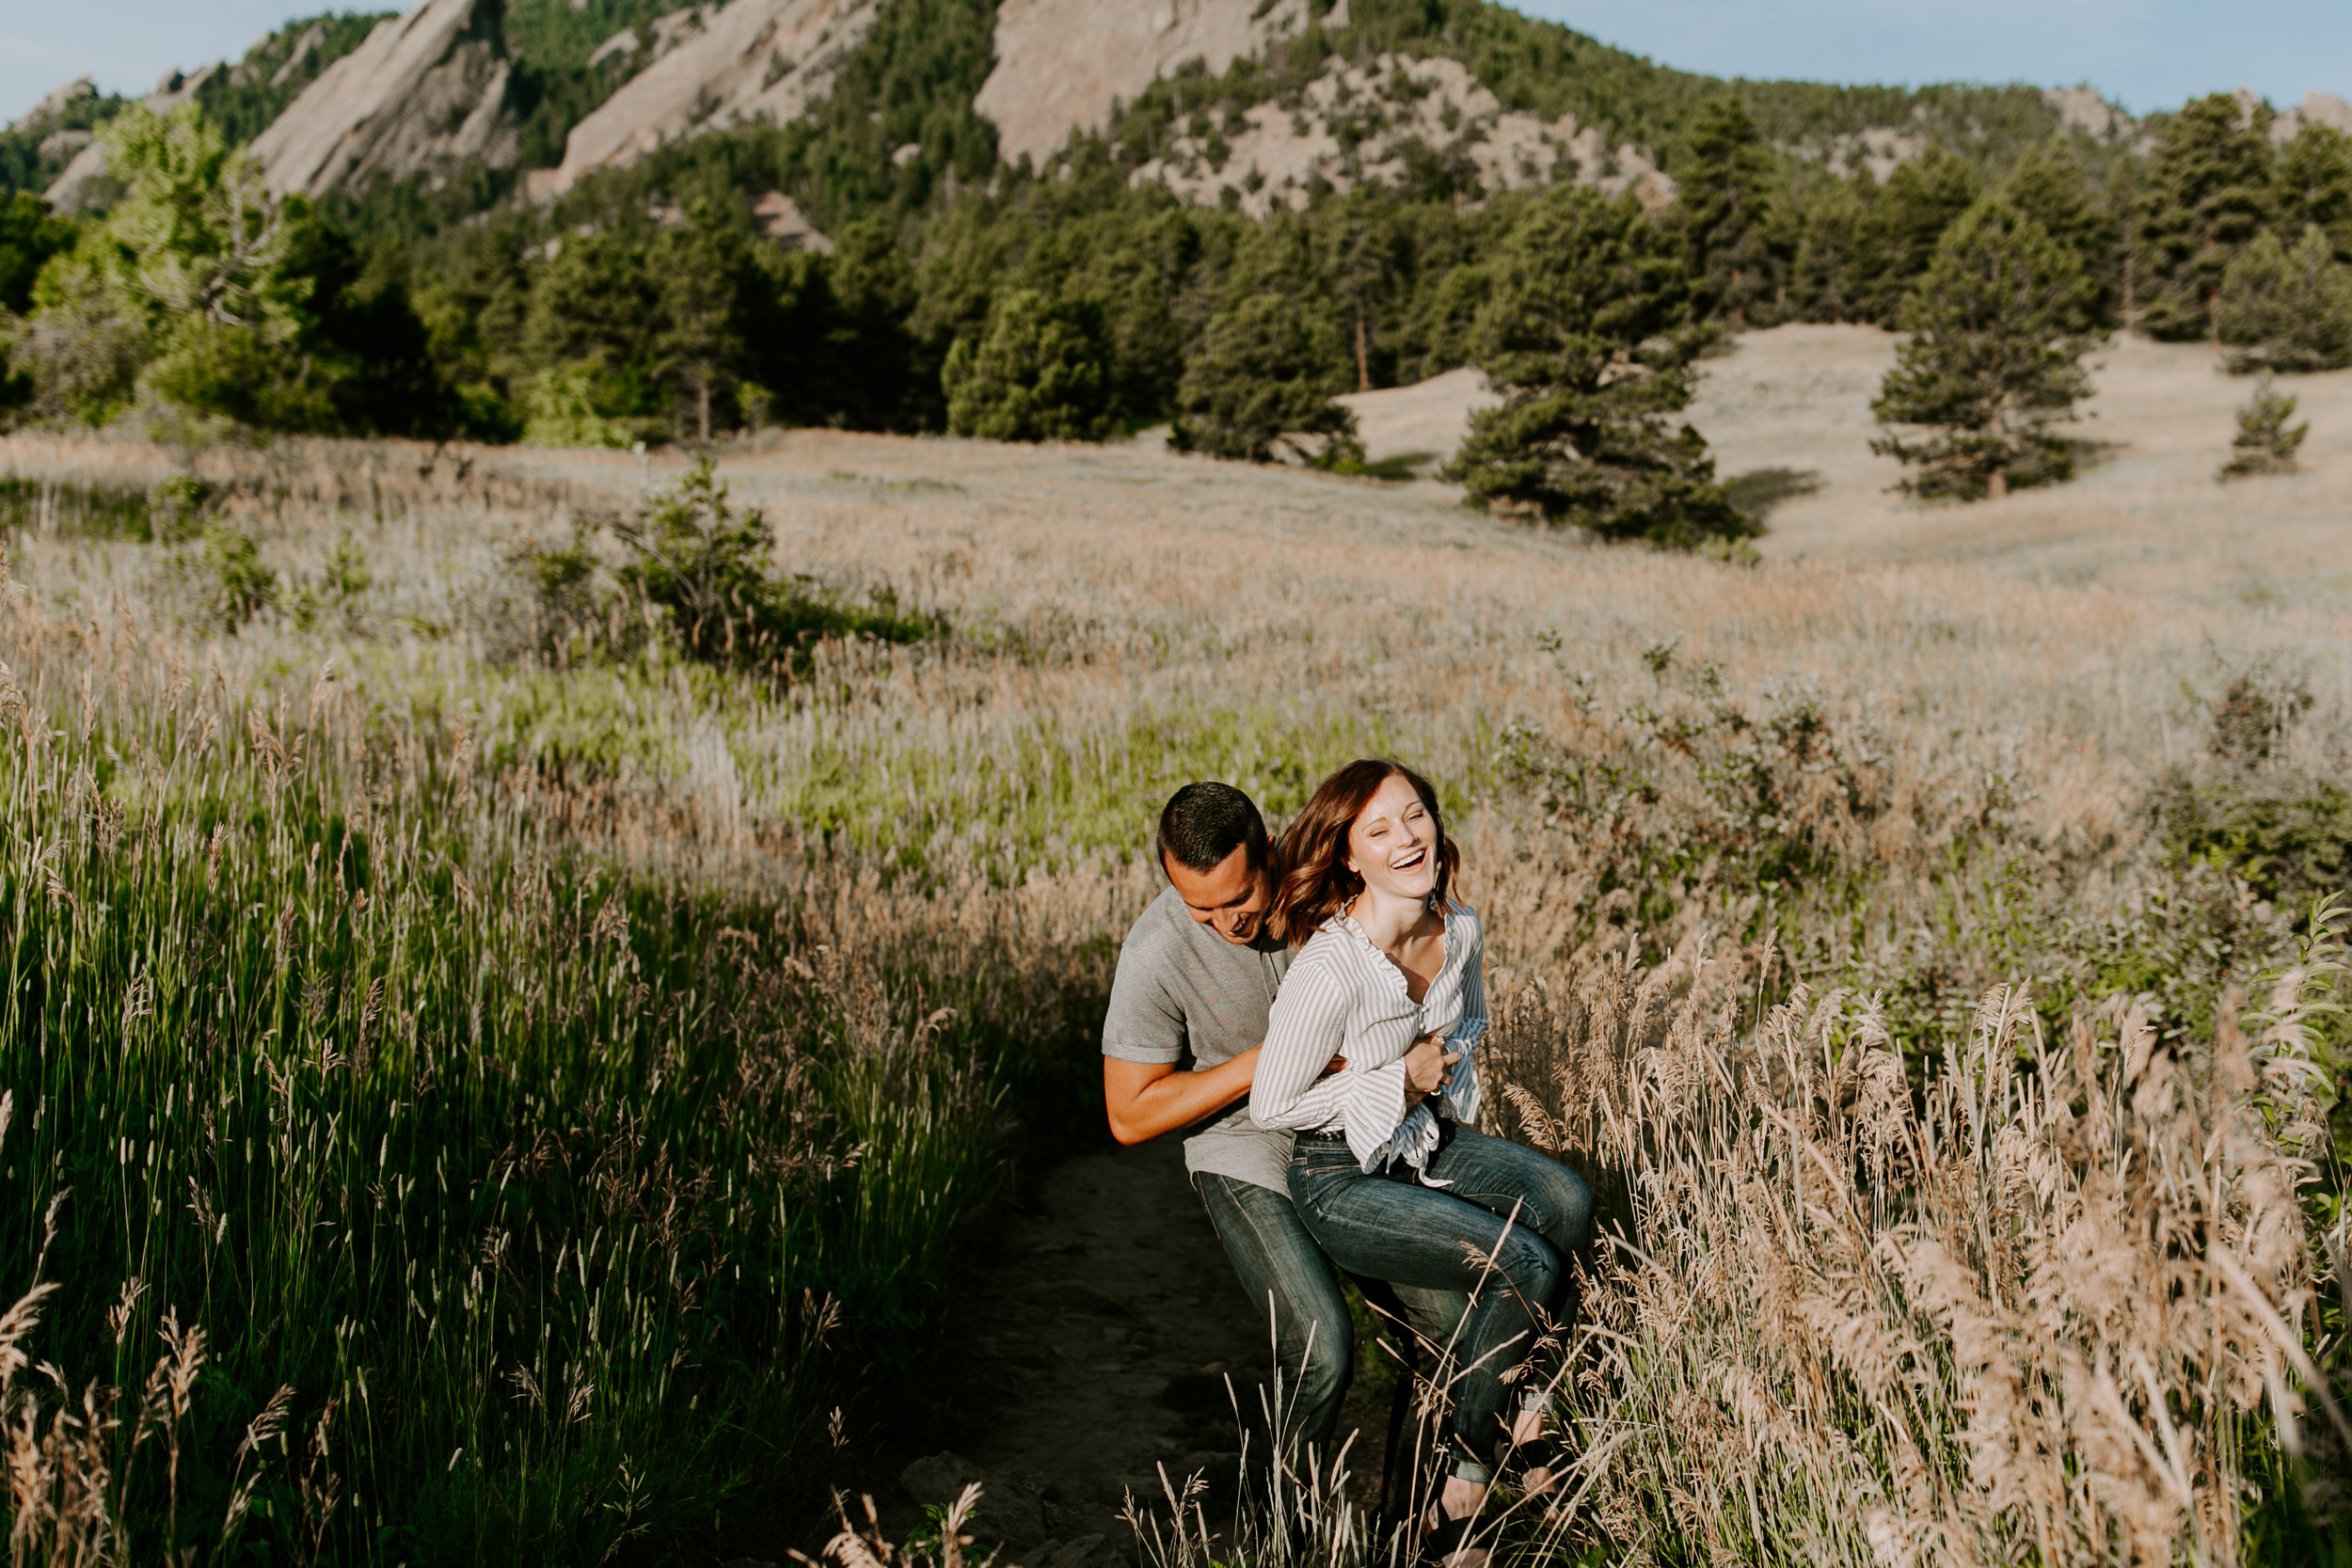 gracetphotography-denver-colorado-adventure-session-elopement-wedding-photographer-35.jpg